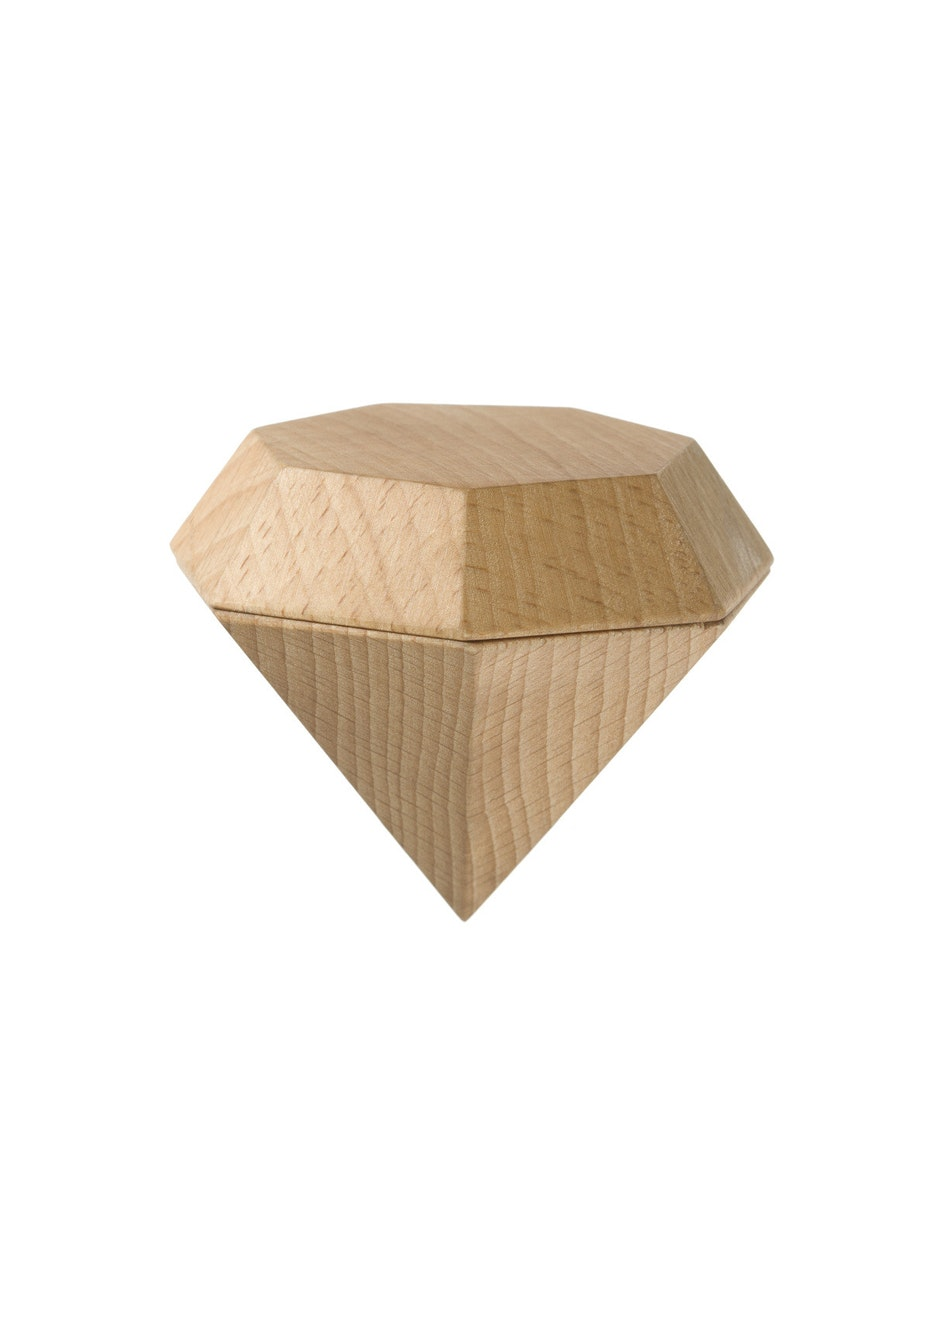 Areaware - Diamond Box Jewellery Box - Natural